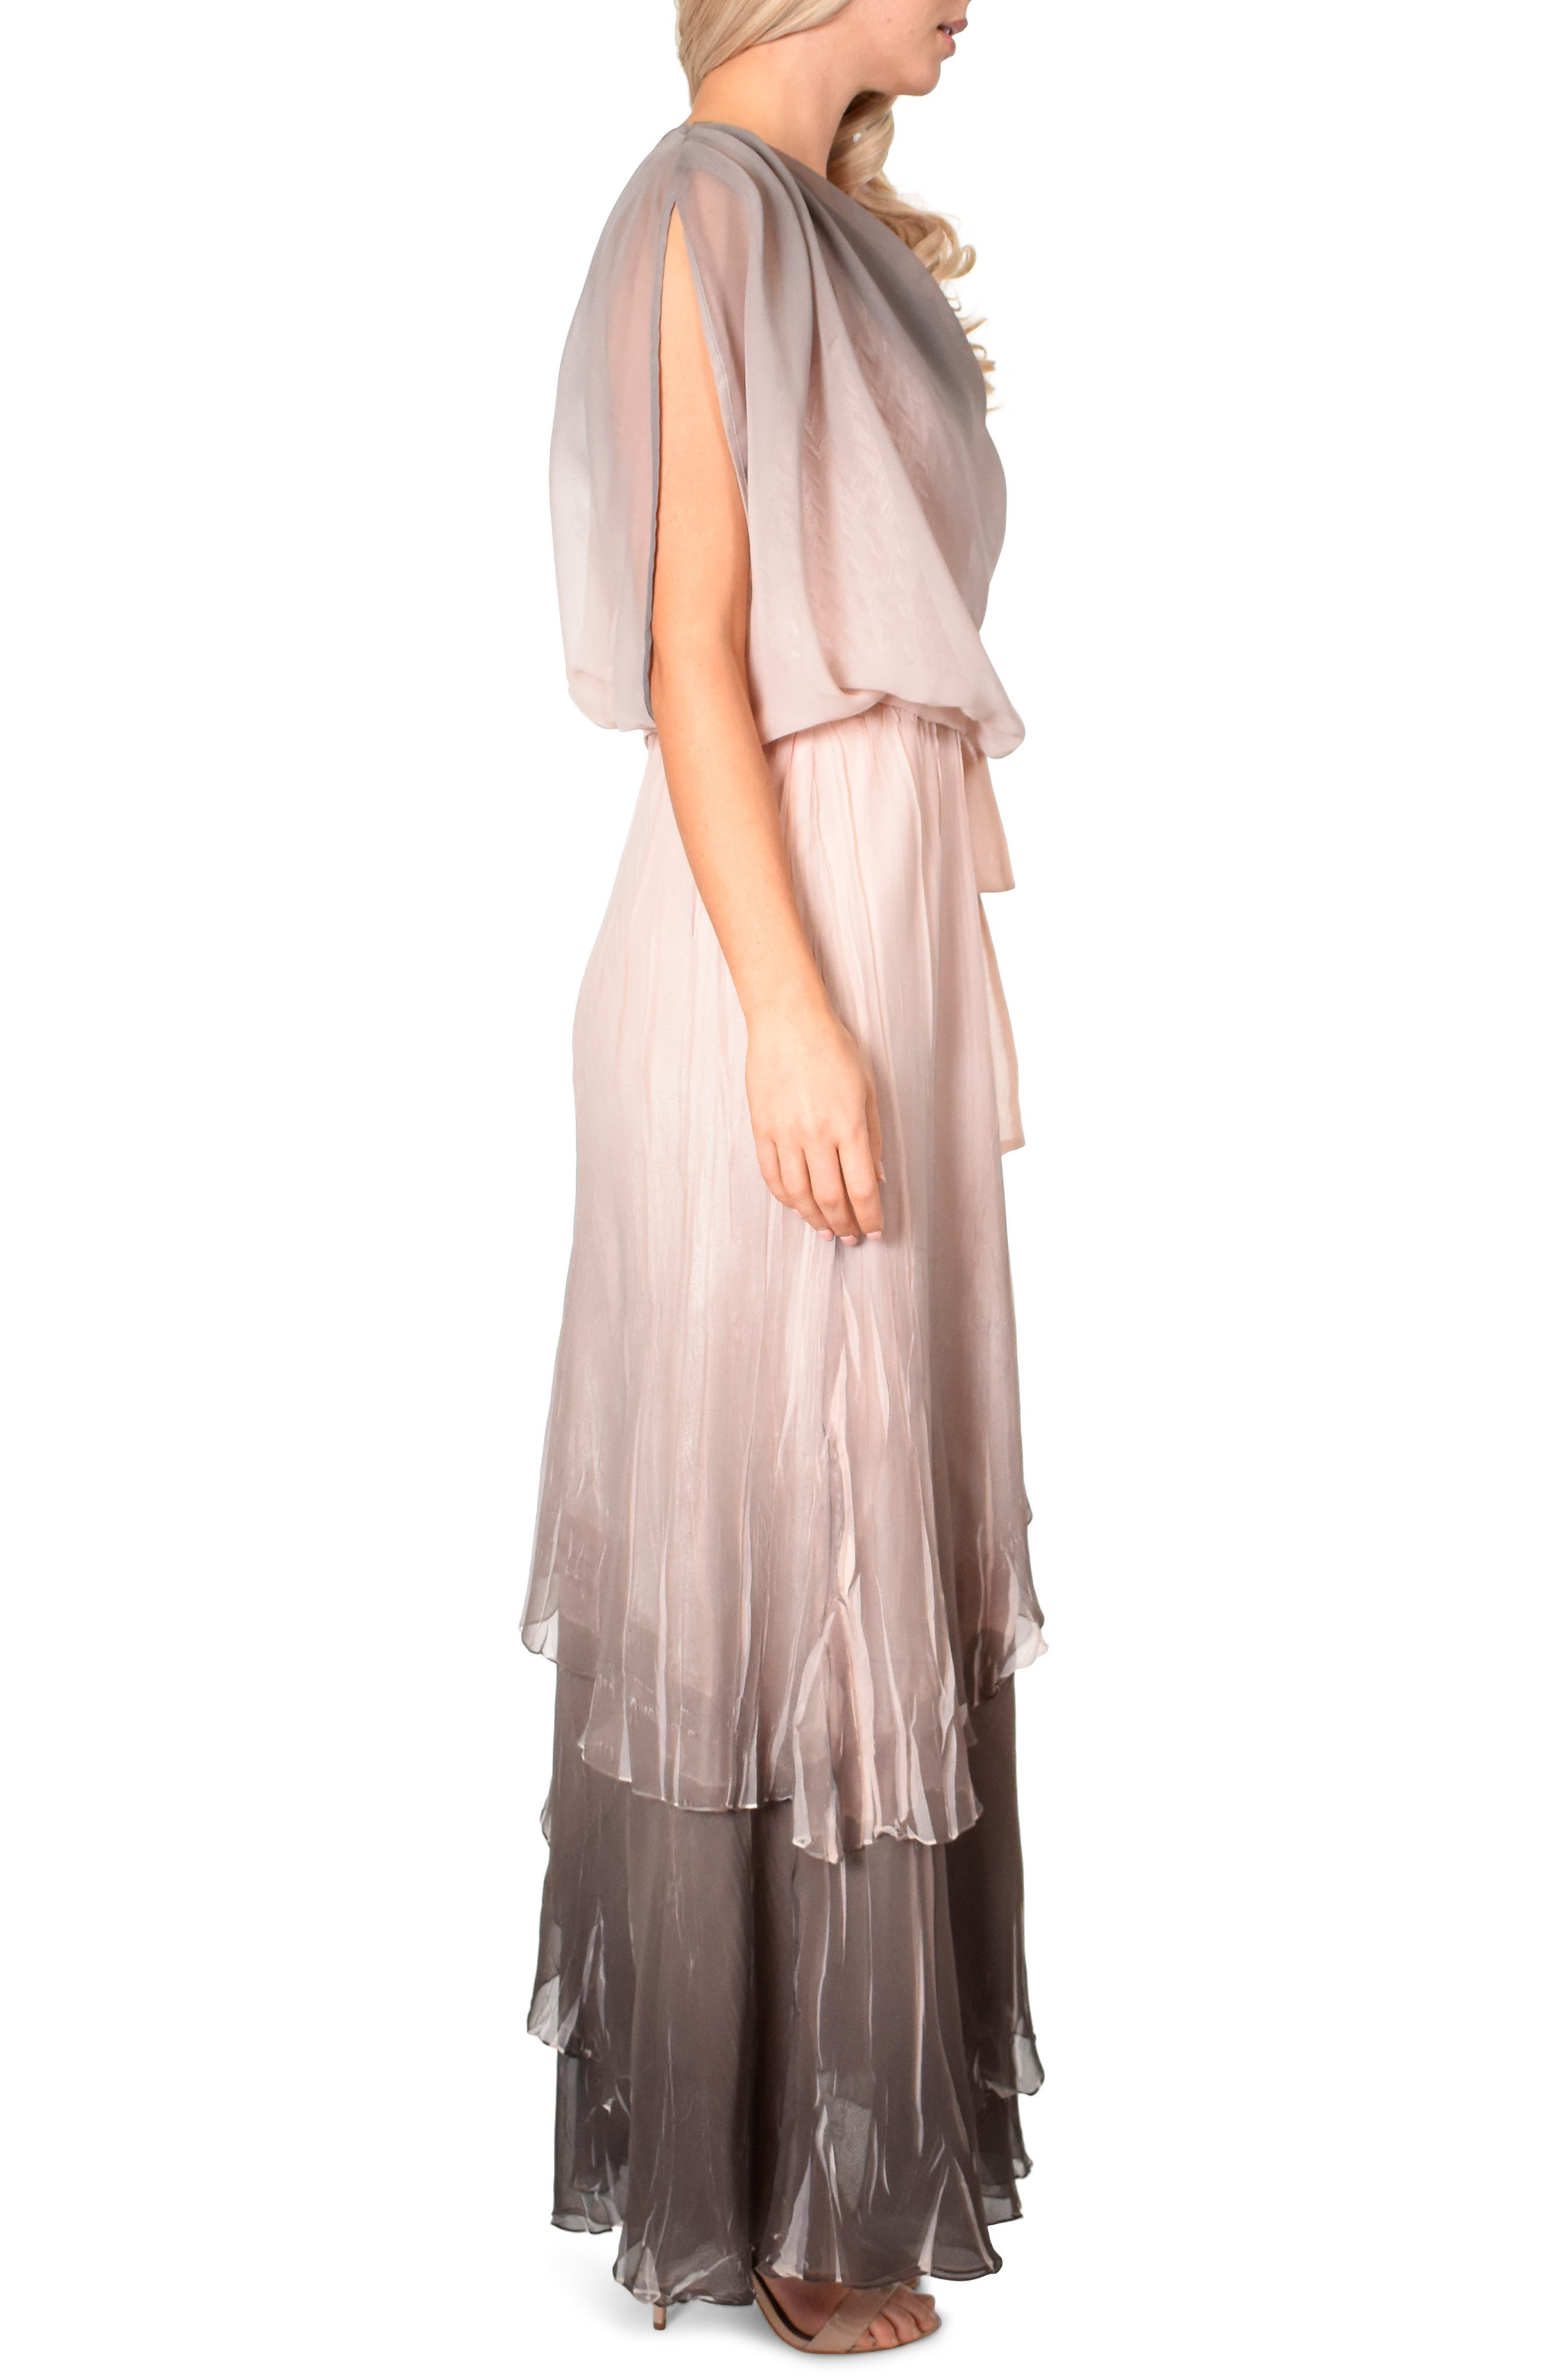 KOMAROV, Drape Chiffon Gown, Alternate thumbnail 3, color, 250